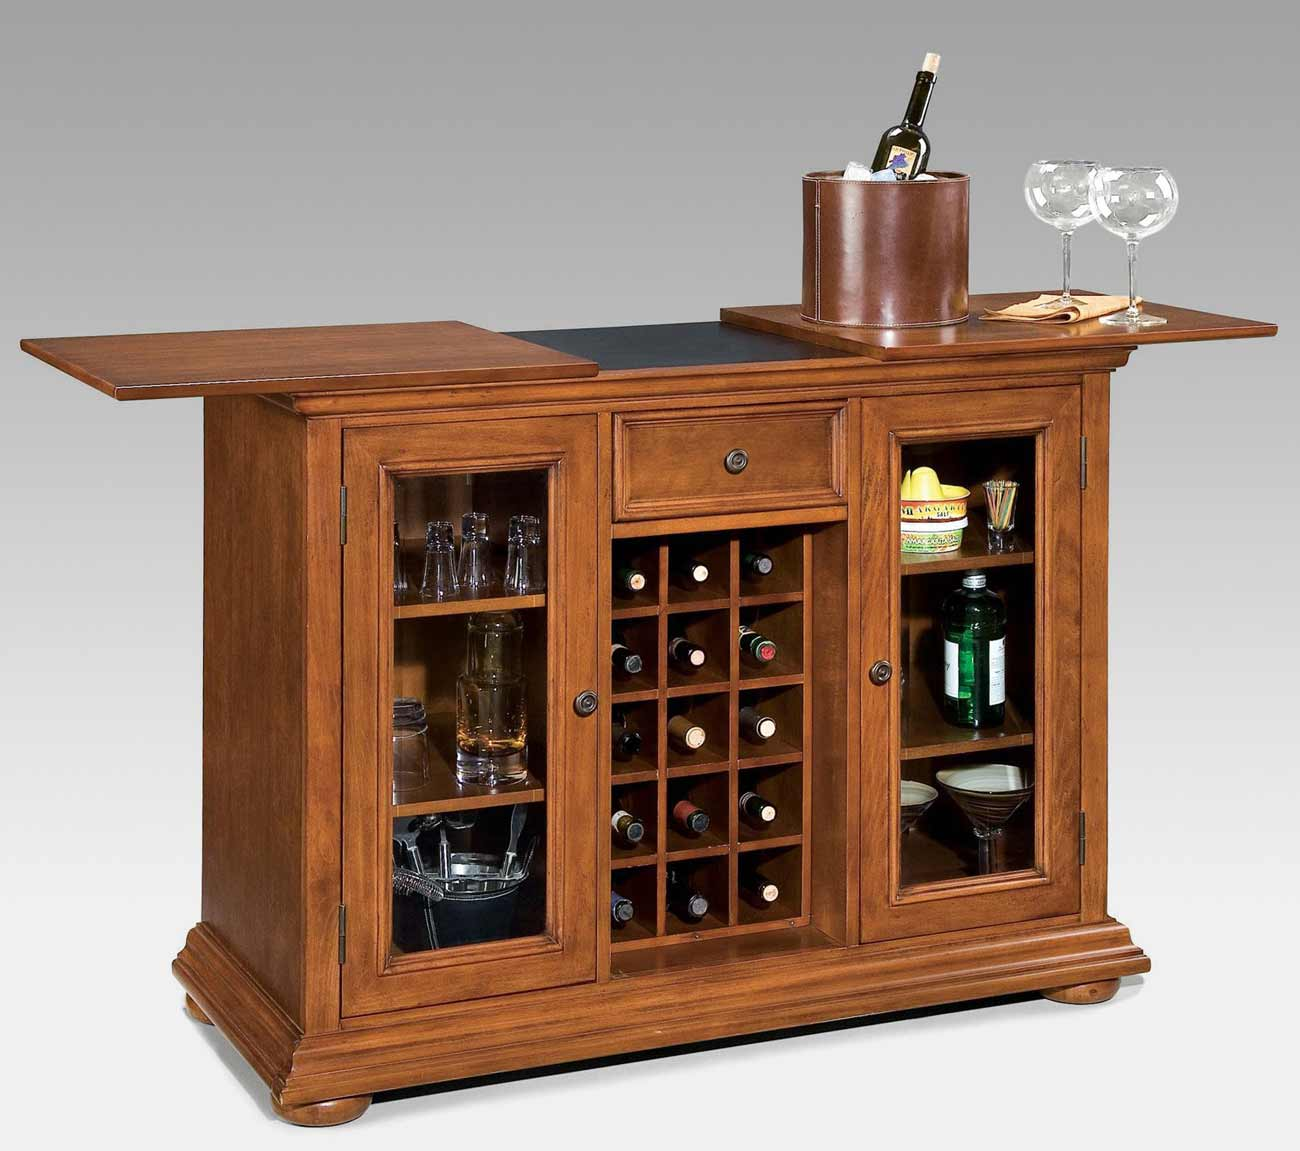 Bar cabinets for home buying guide - Bar cabinets for home ...